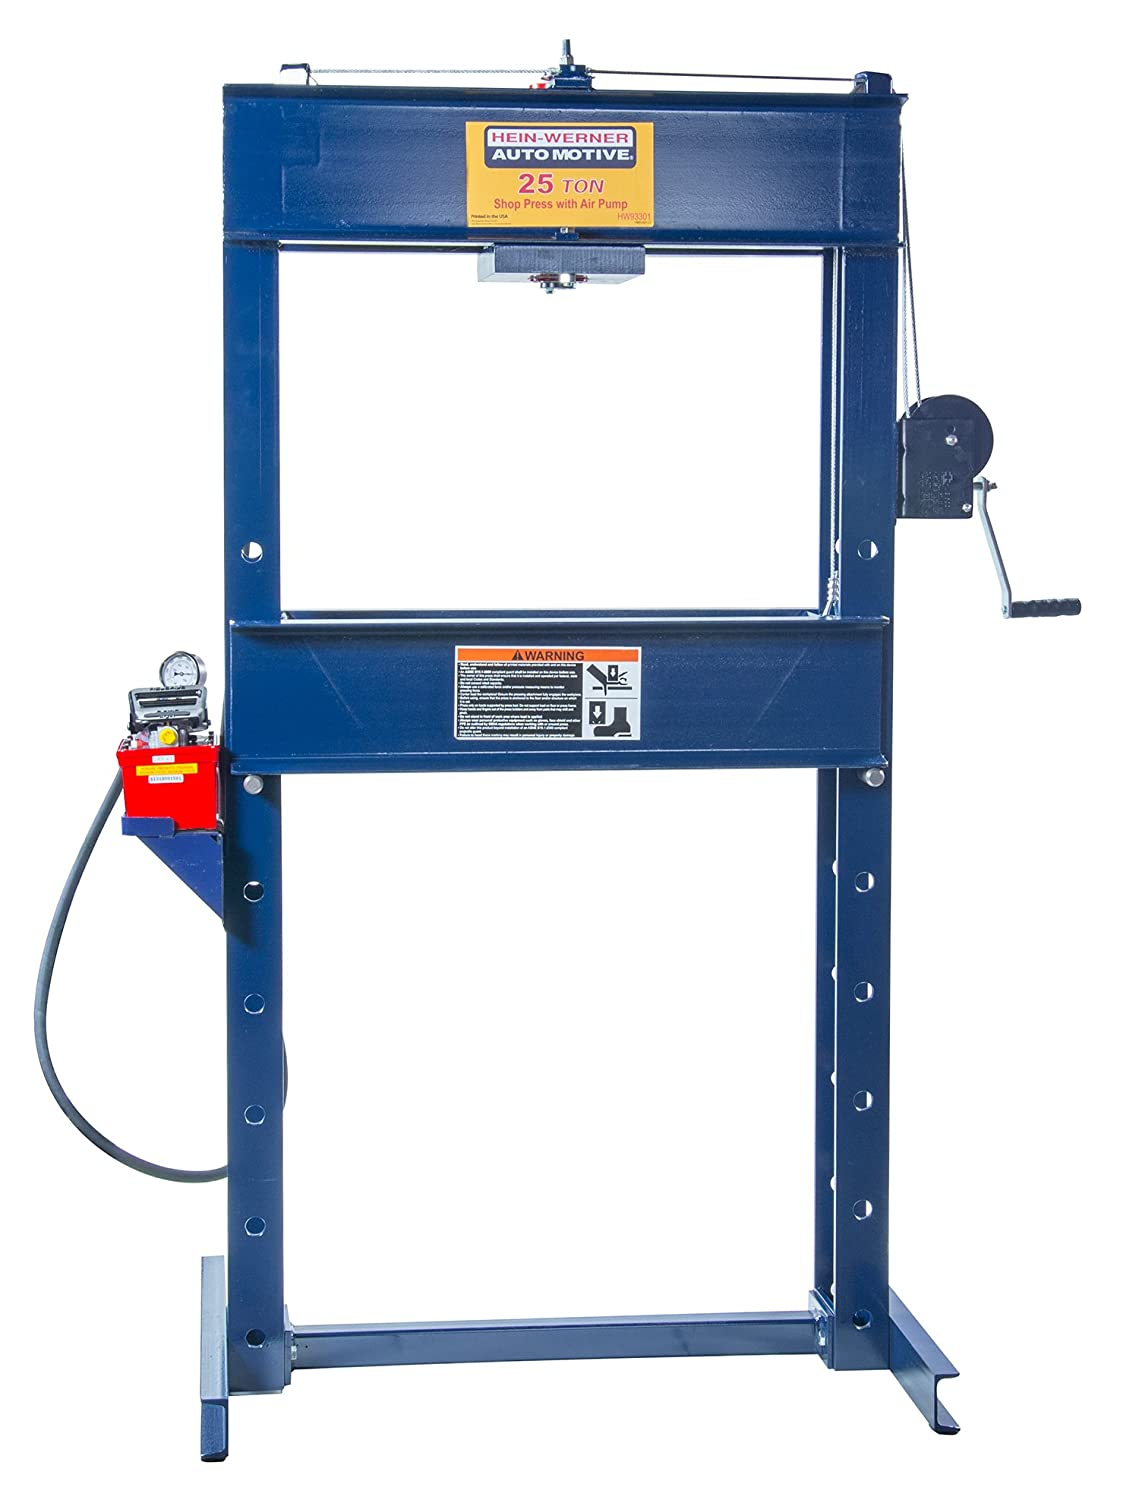 Hein-Werner HW93301 Blue 6-Inch Stroke Shop Press with Air Pump-25 Ton Capacity